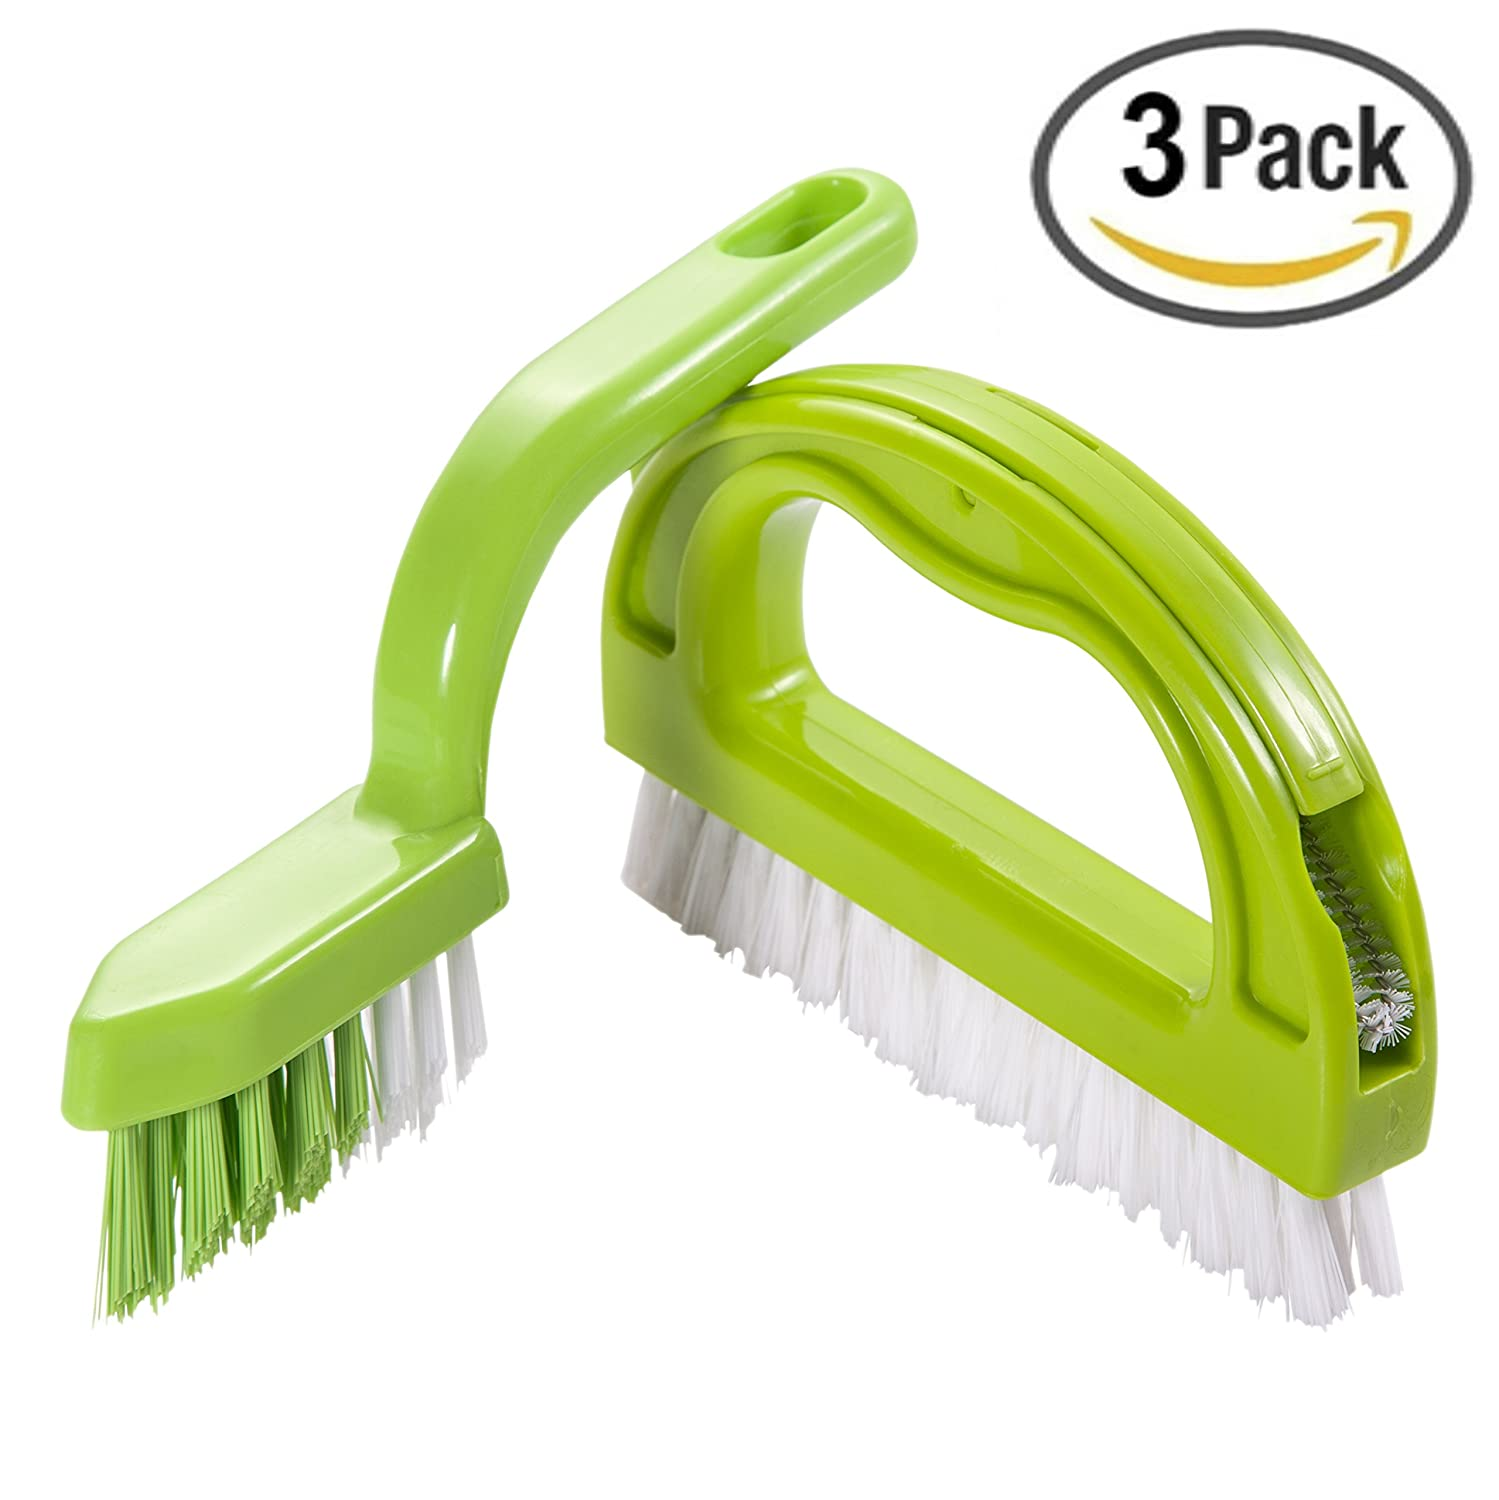 Scrubber brush Joint Brush, Foresight C-Series 3 in 1 Super Value Pack Multifunction Brush Grout Brush Ergonomic Design Excellent For Separately use in the Bathroom & Kitchen.( 3 Brushes Included )